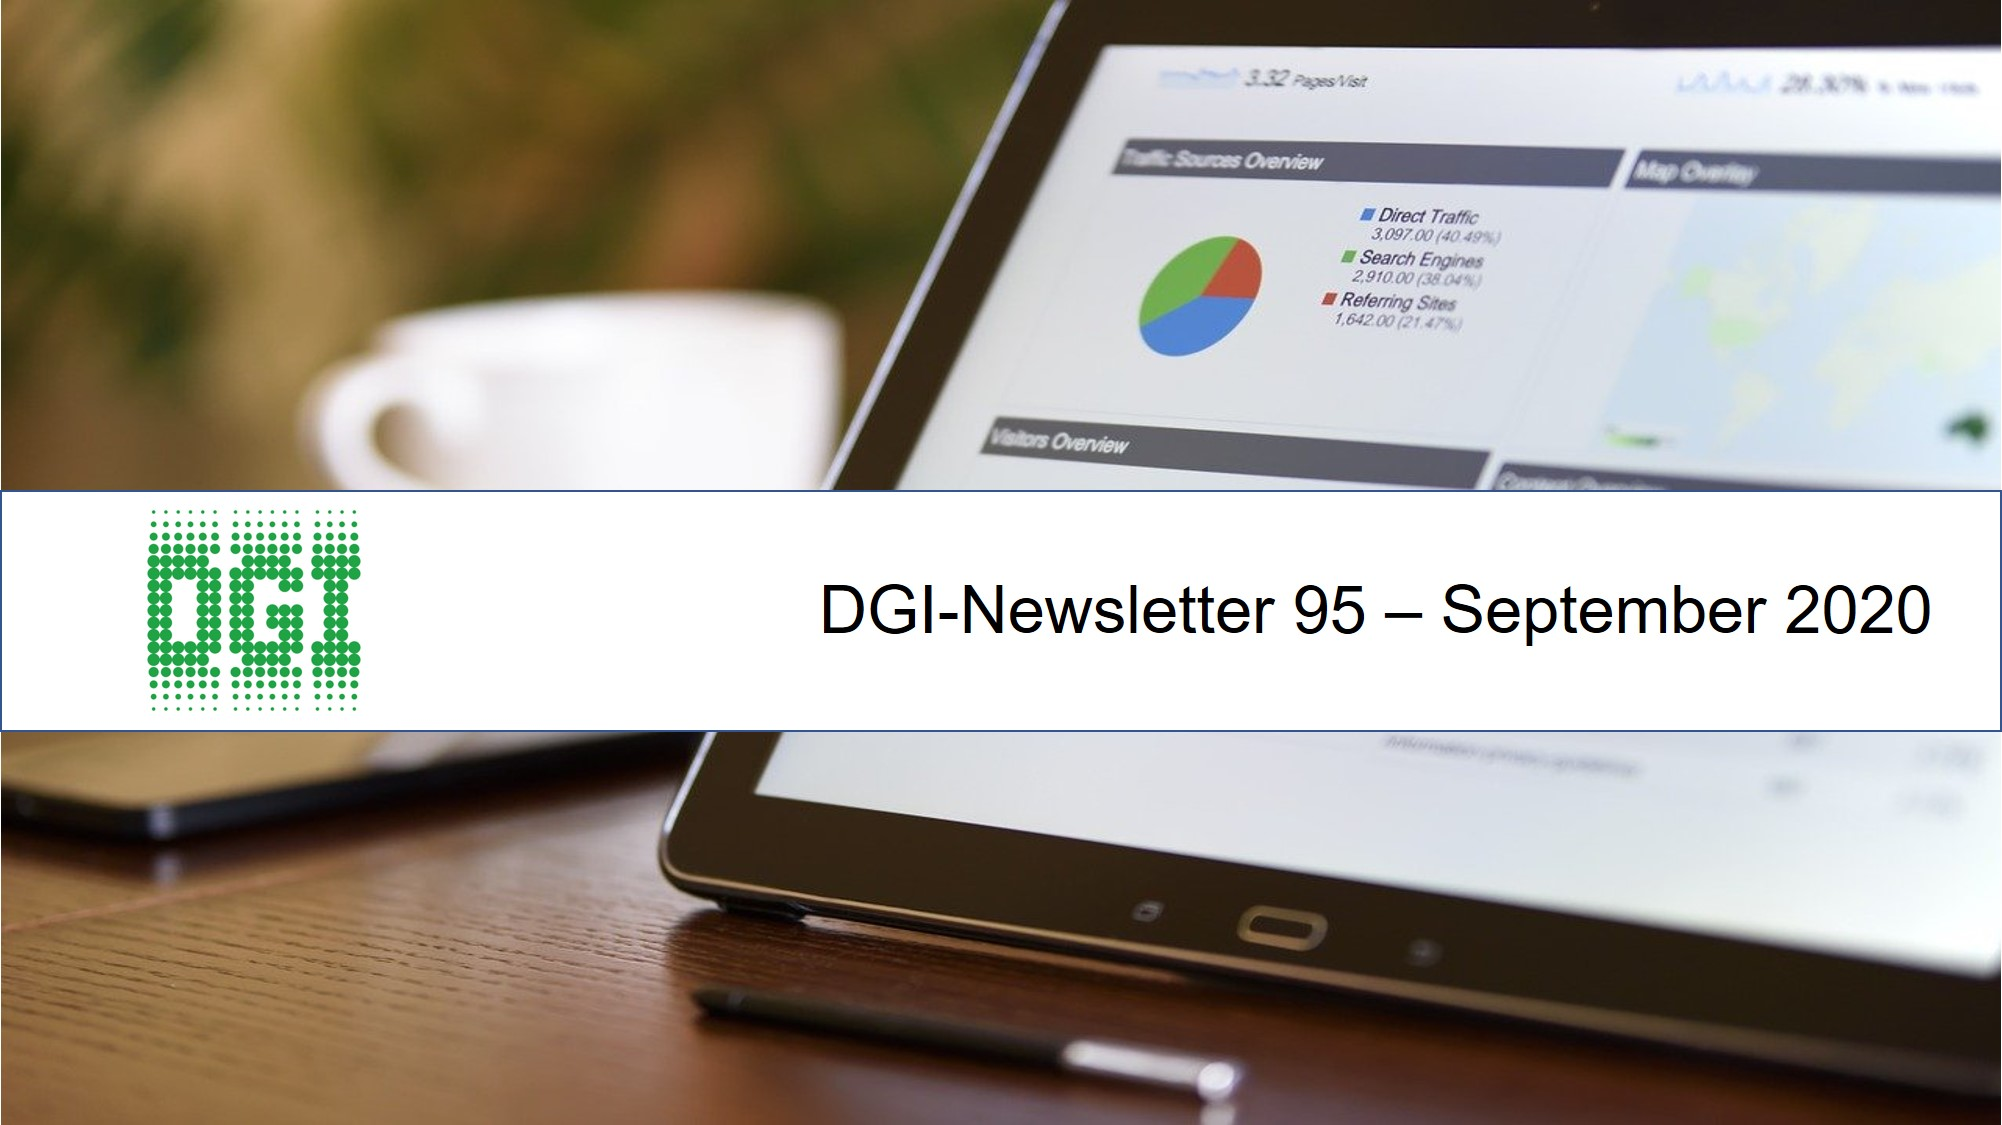 DGI-Newsletter 95 – September 2020